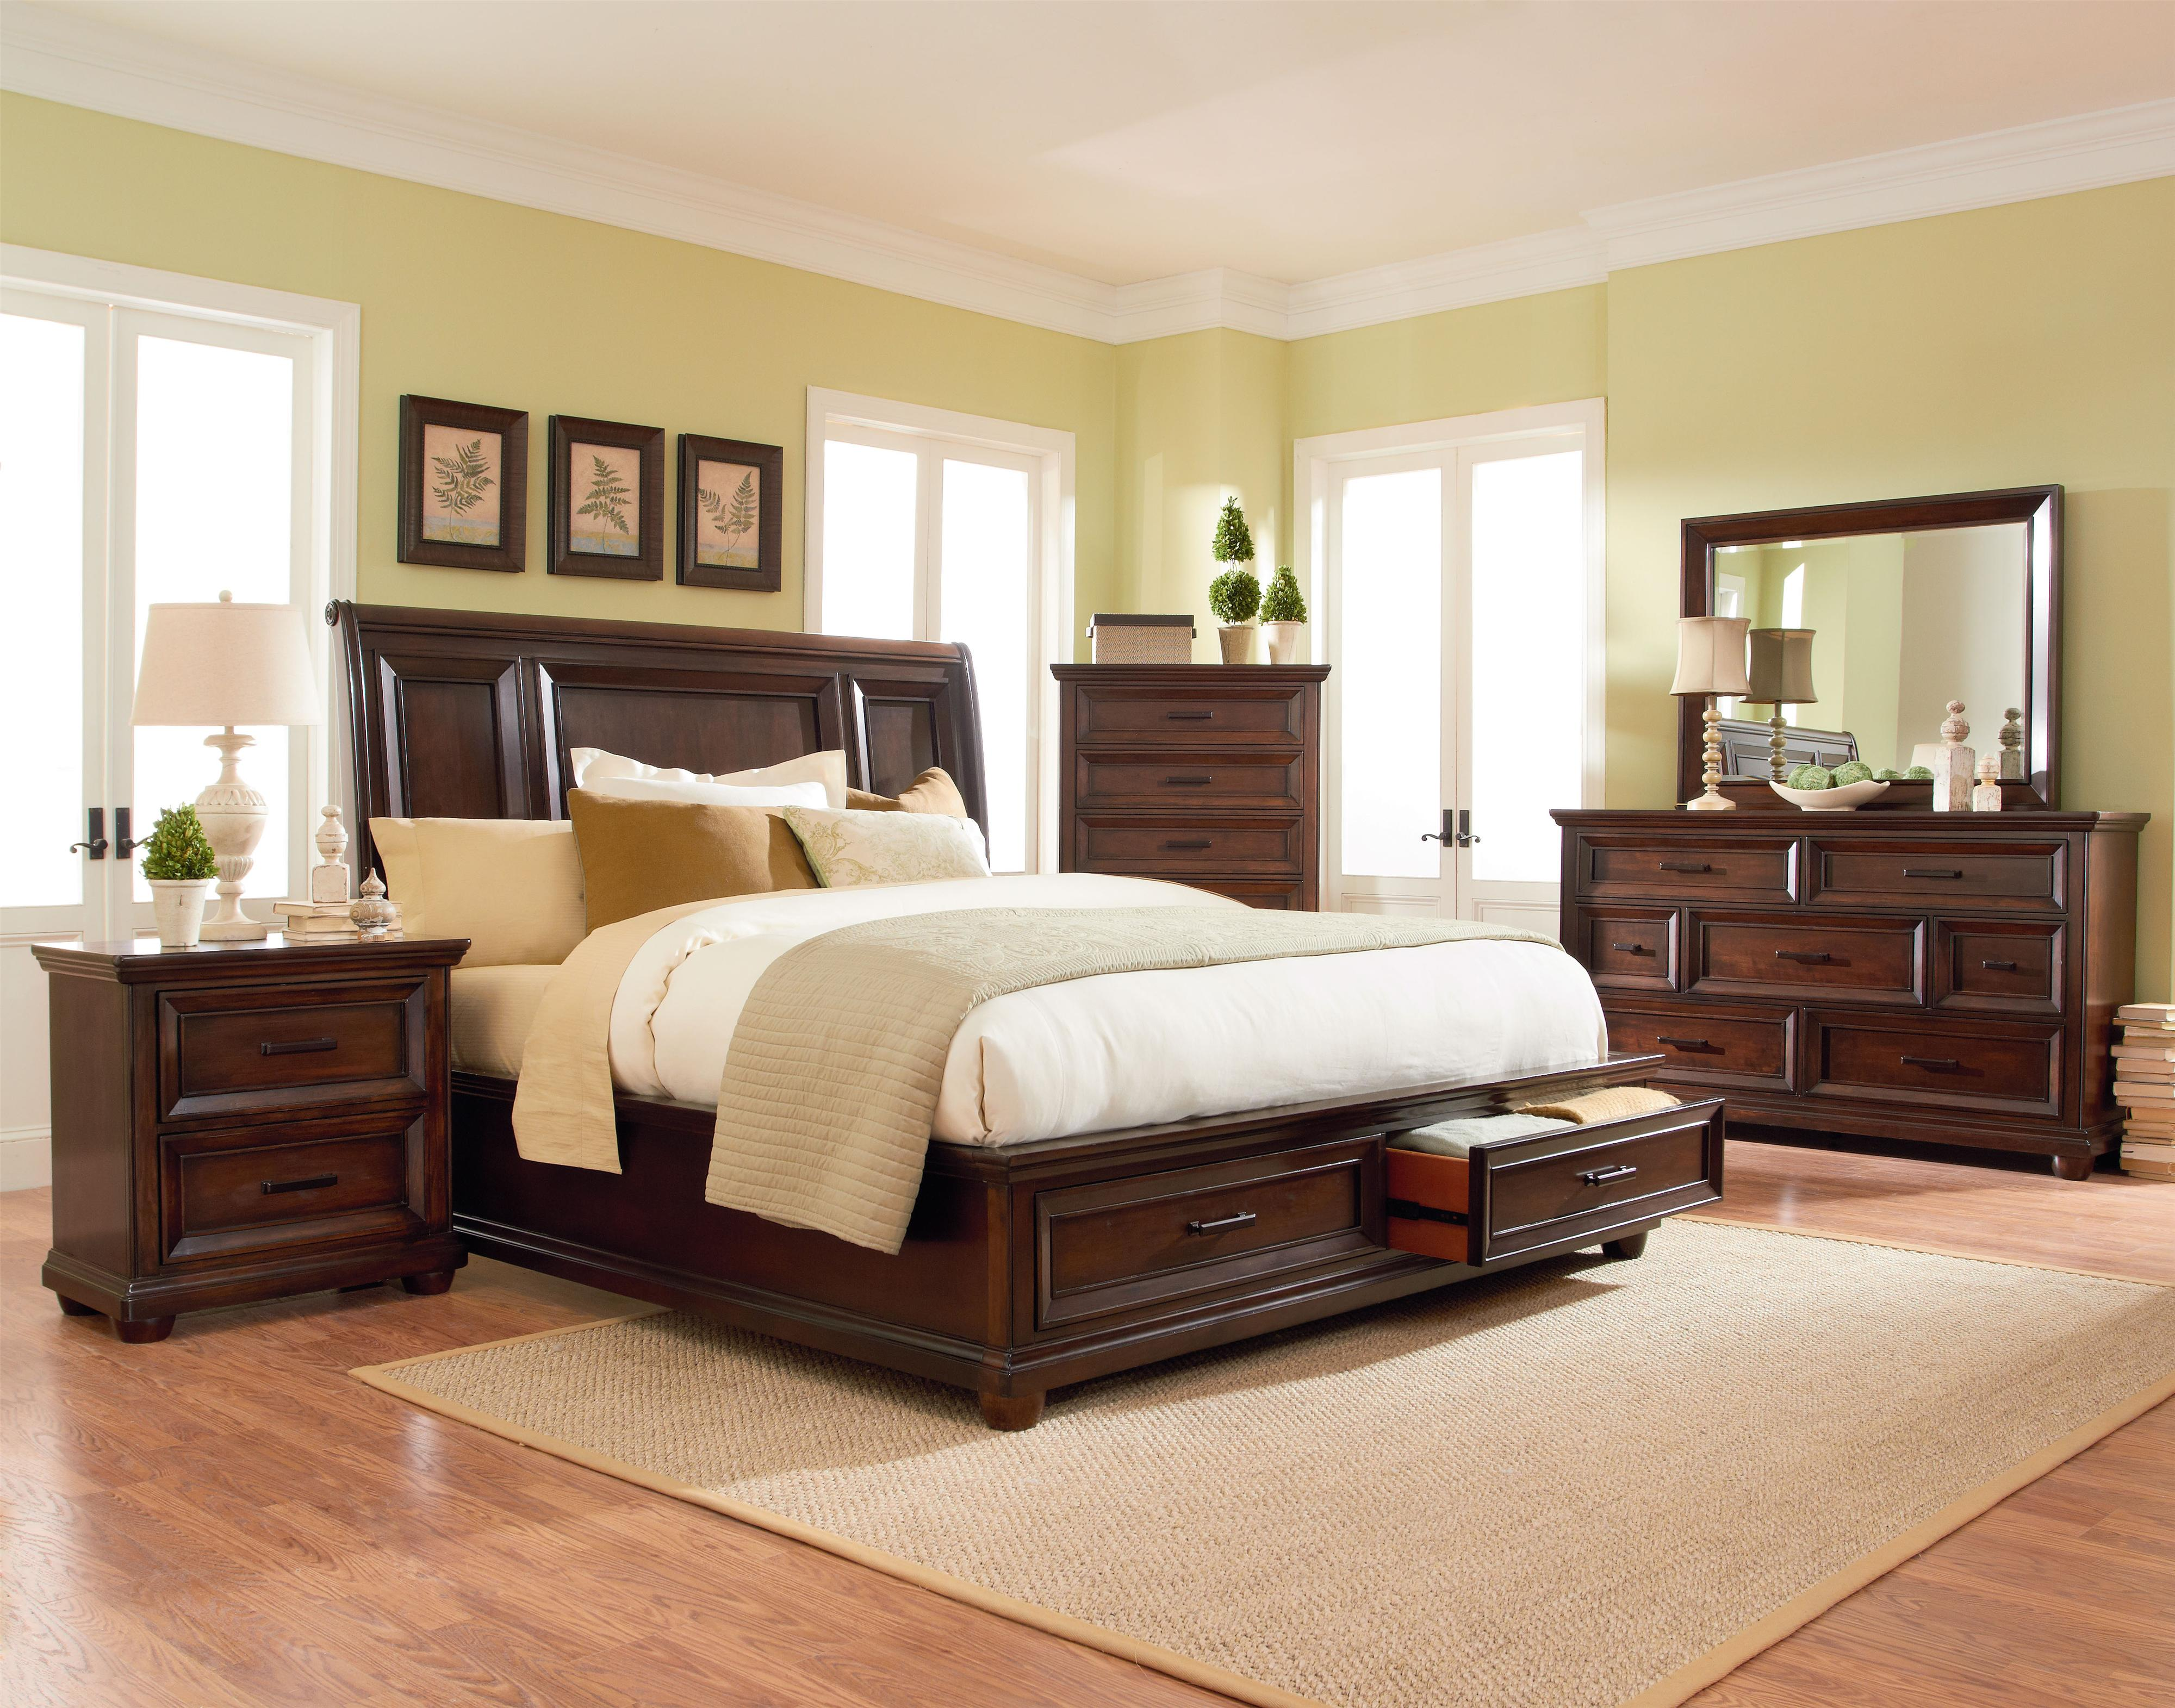 Standard Furniture Vineyard King Bedroom Group - Item Number: 877 King Bedroom 2